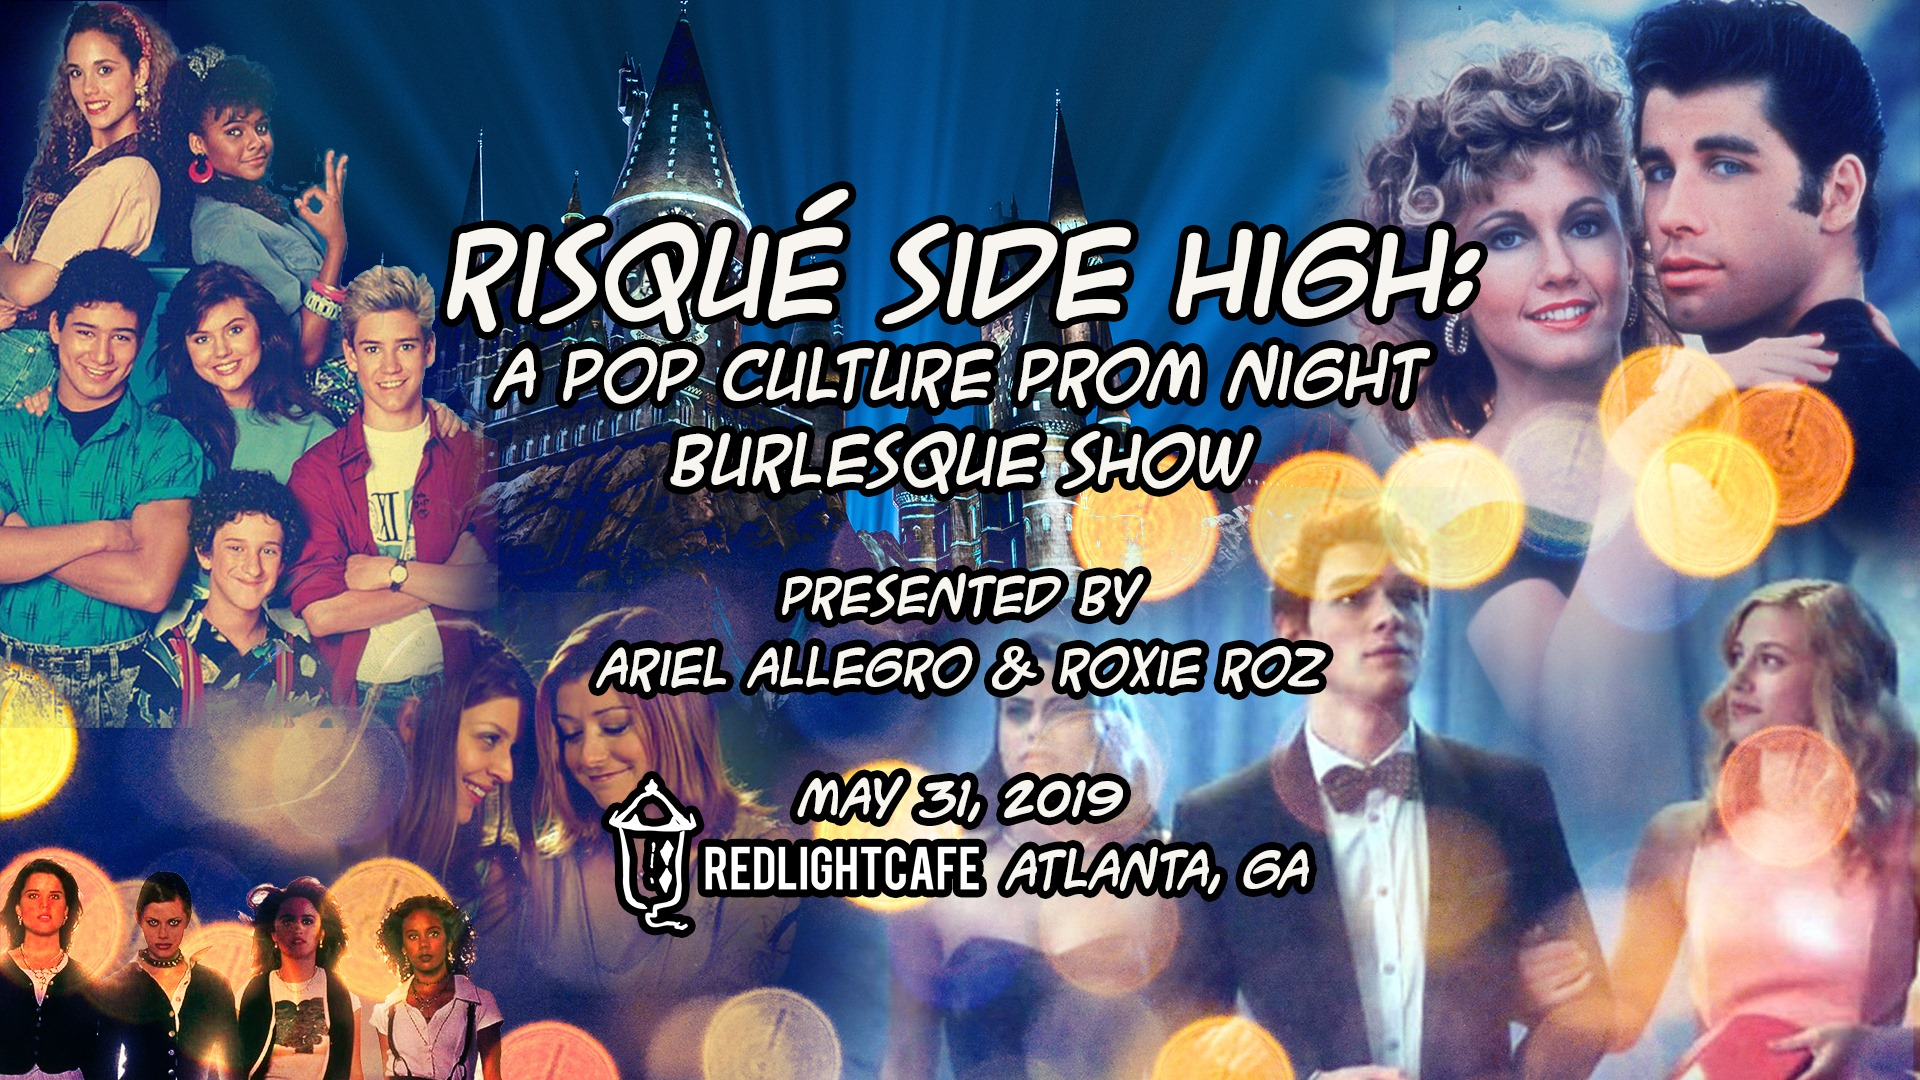 Risqué-Side High: Prom Night & Burlesque Show by Ariel Allegro — May 31, 2019 — Red Light Café, Atlanta, GA